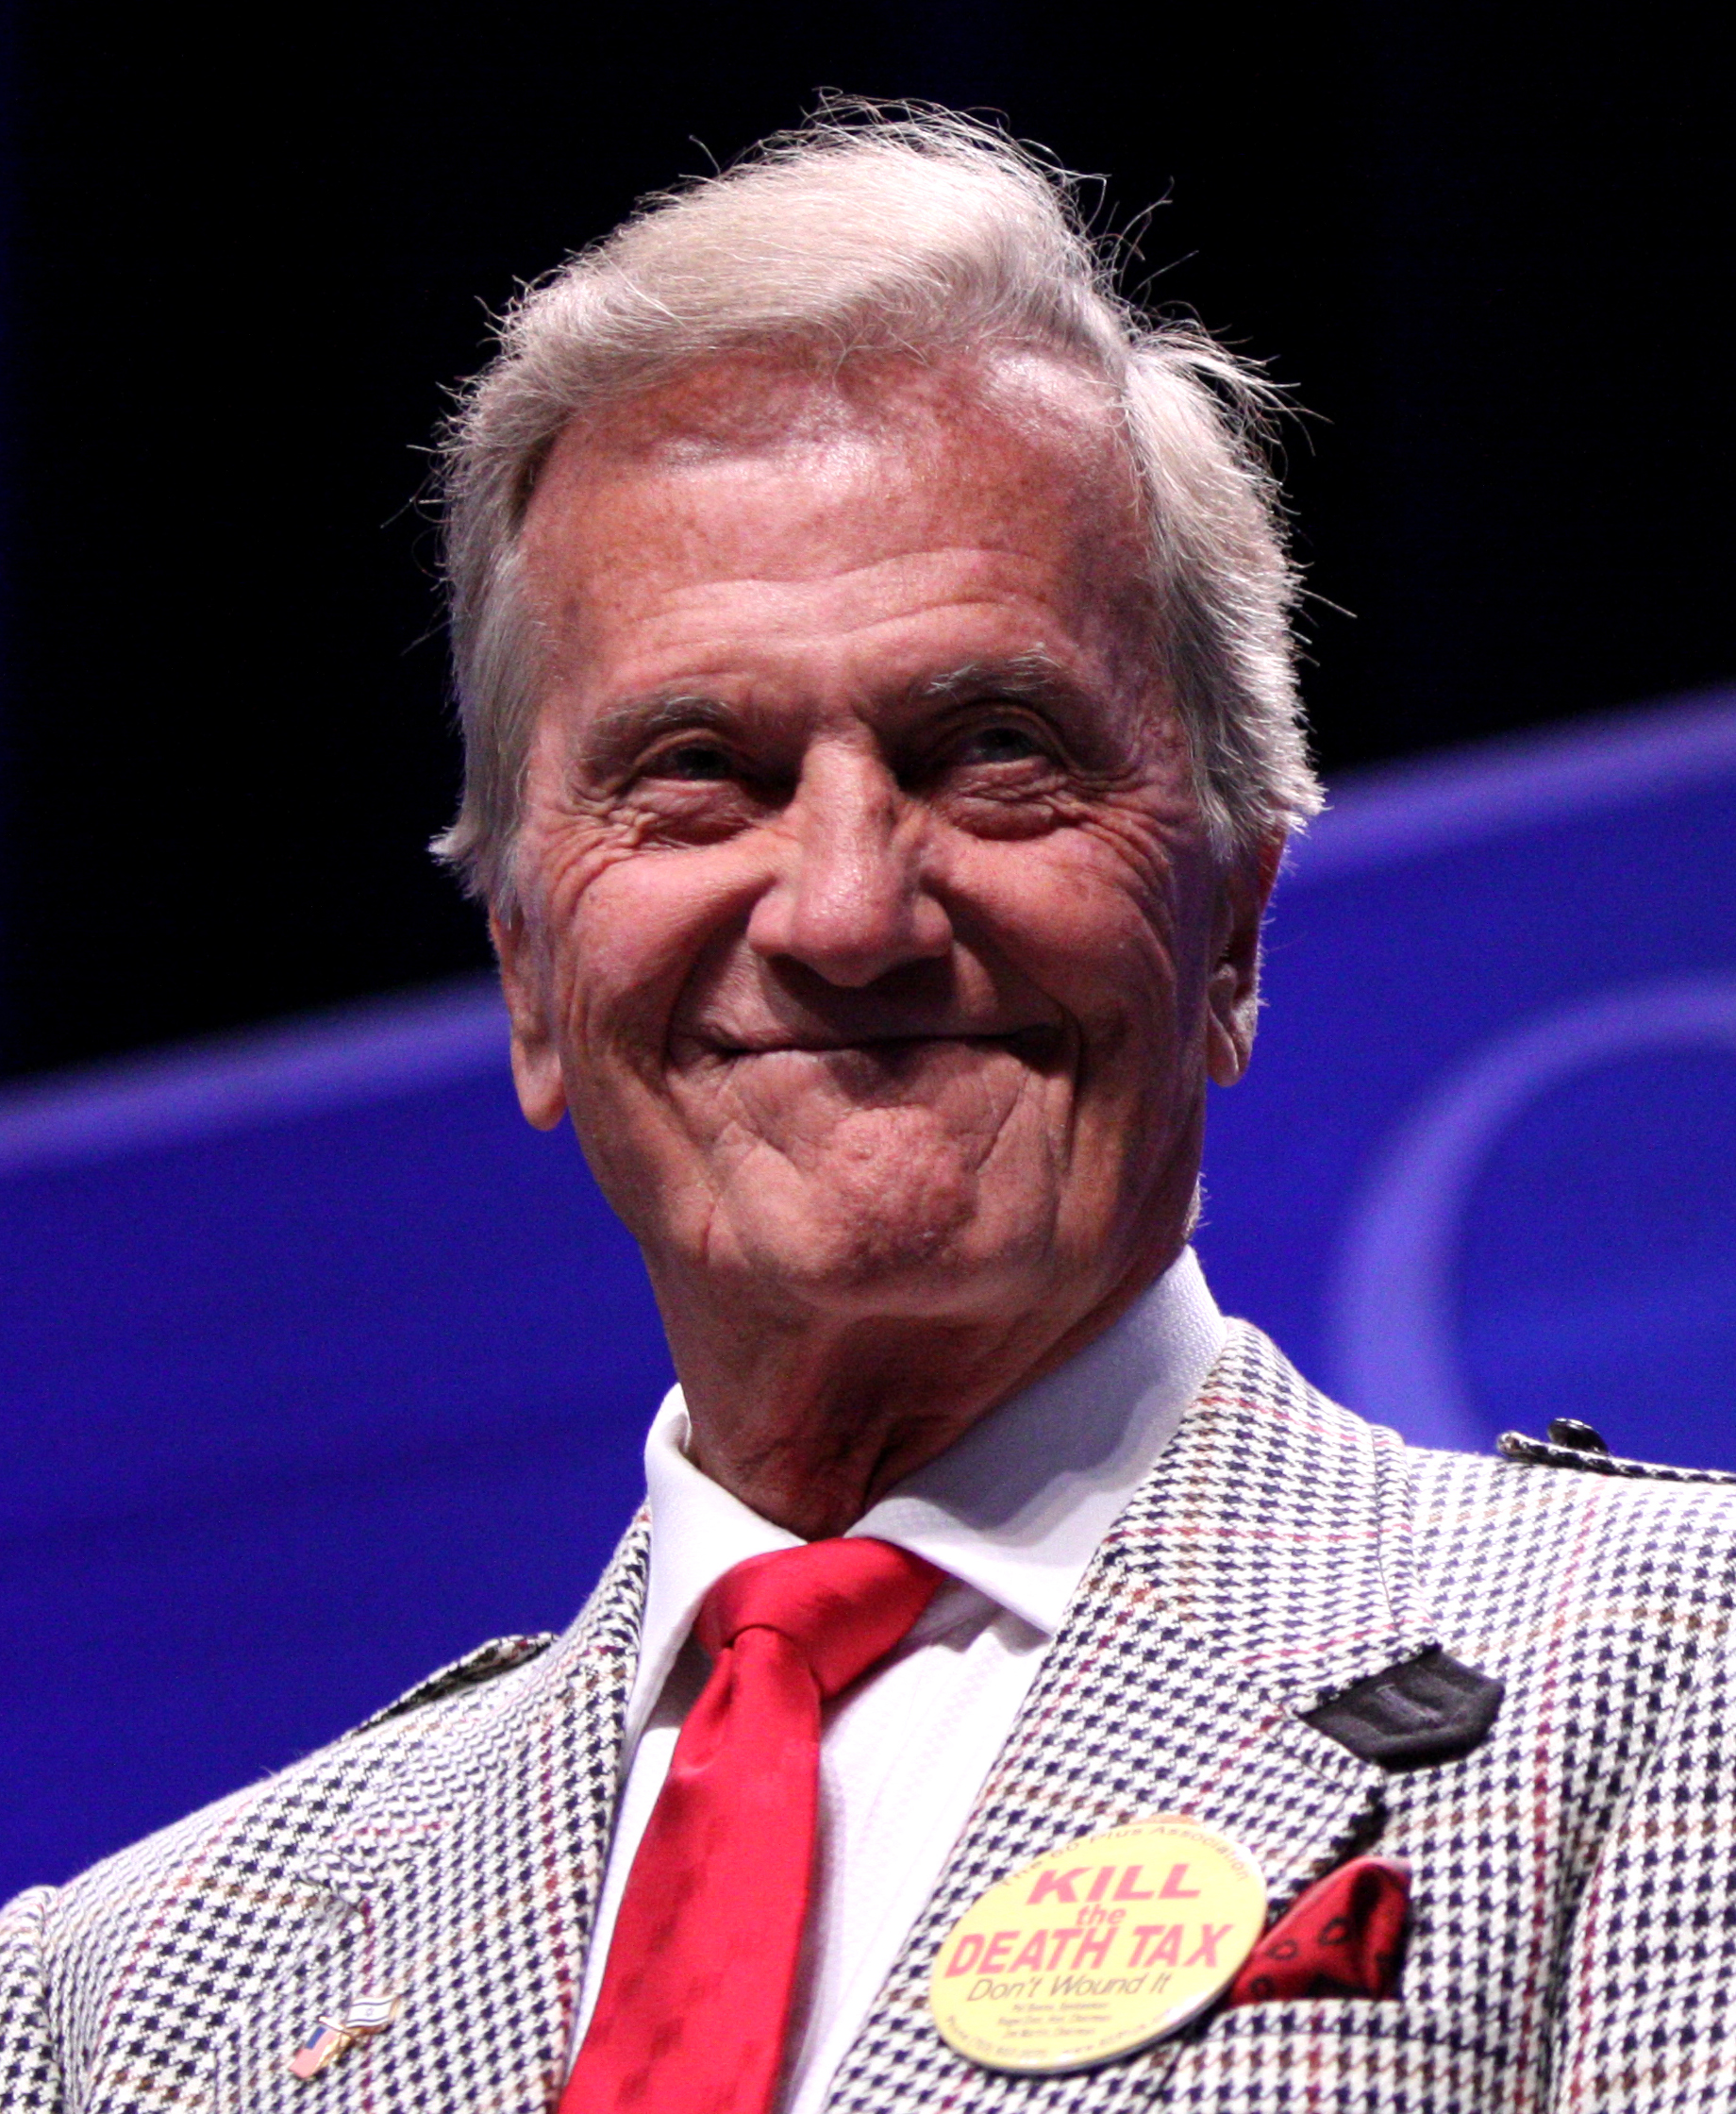 Pat Boone's quote #8